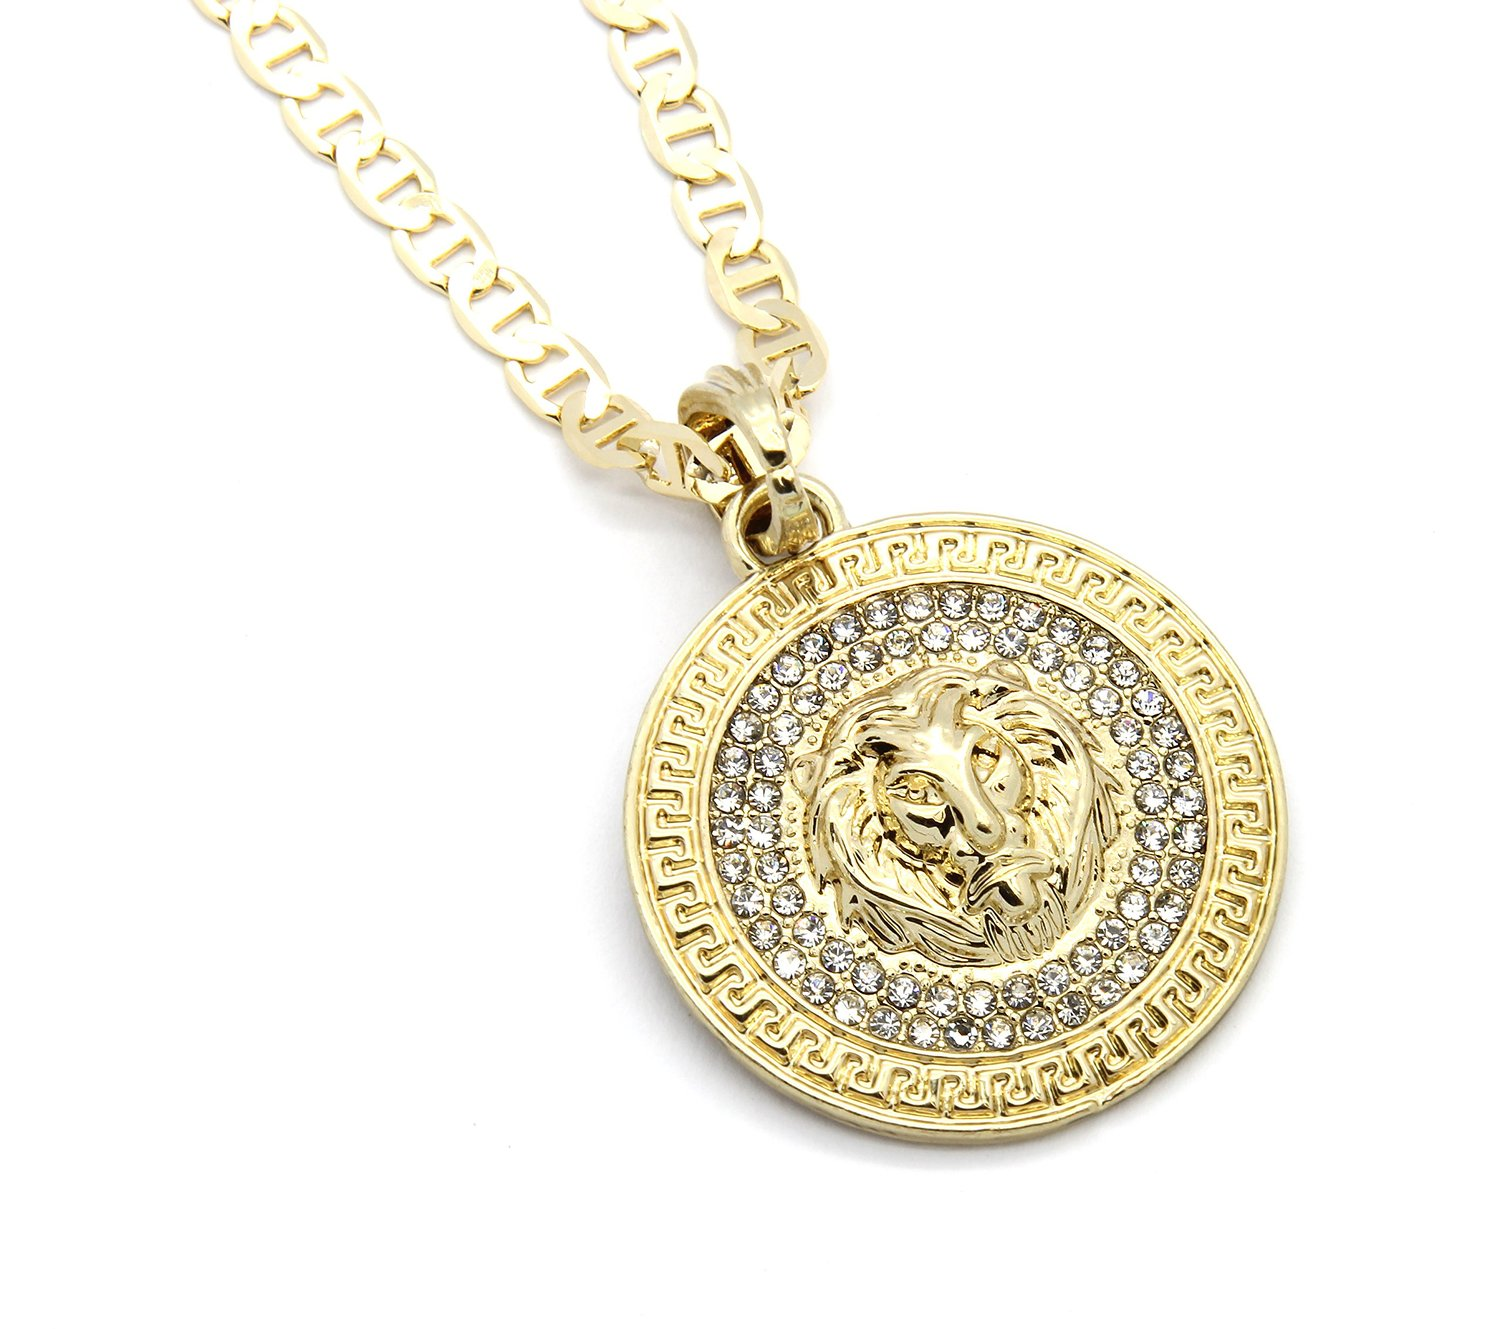 memory pnd pendant mens medallion engrave diamond row frame yellow photo real gold